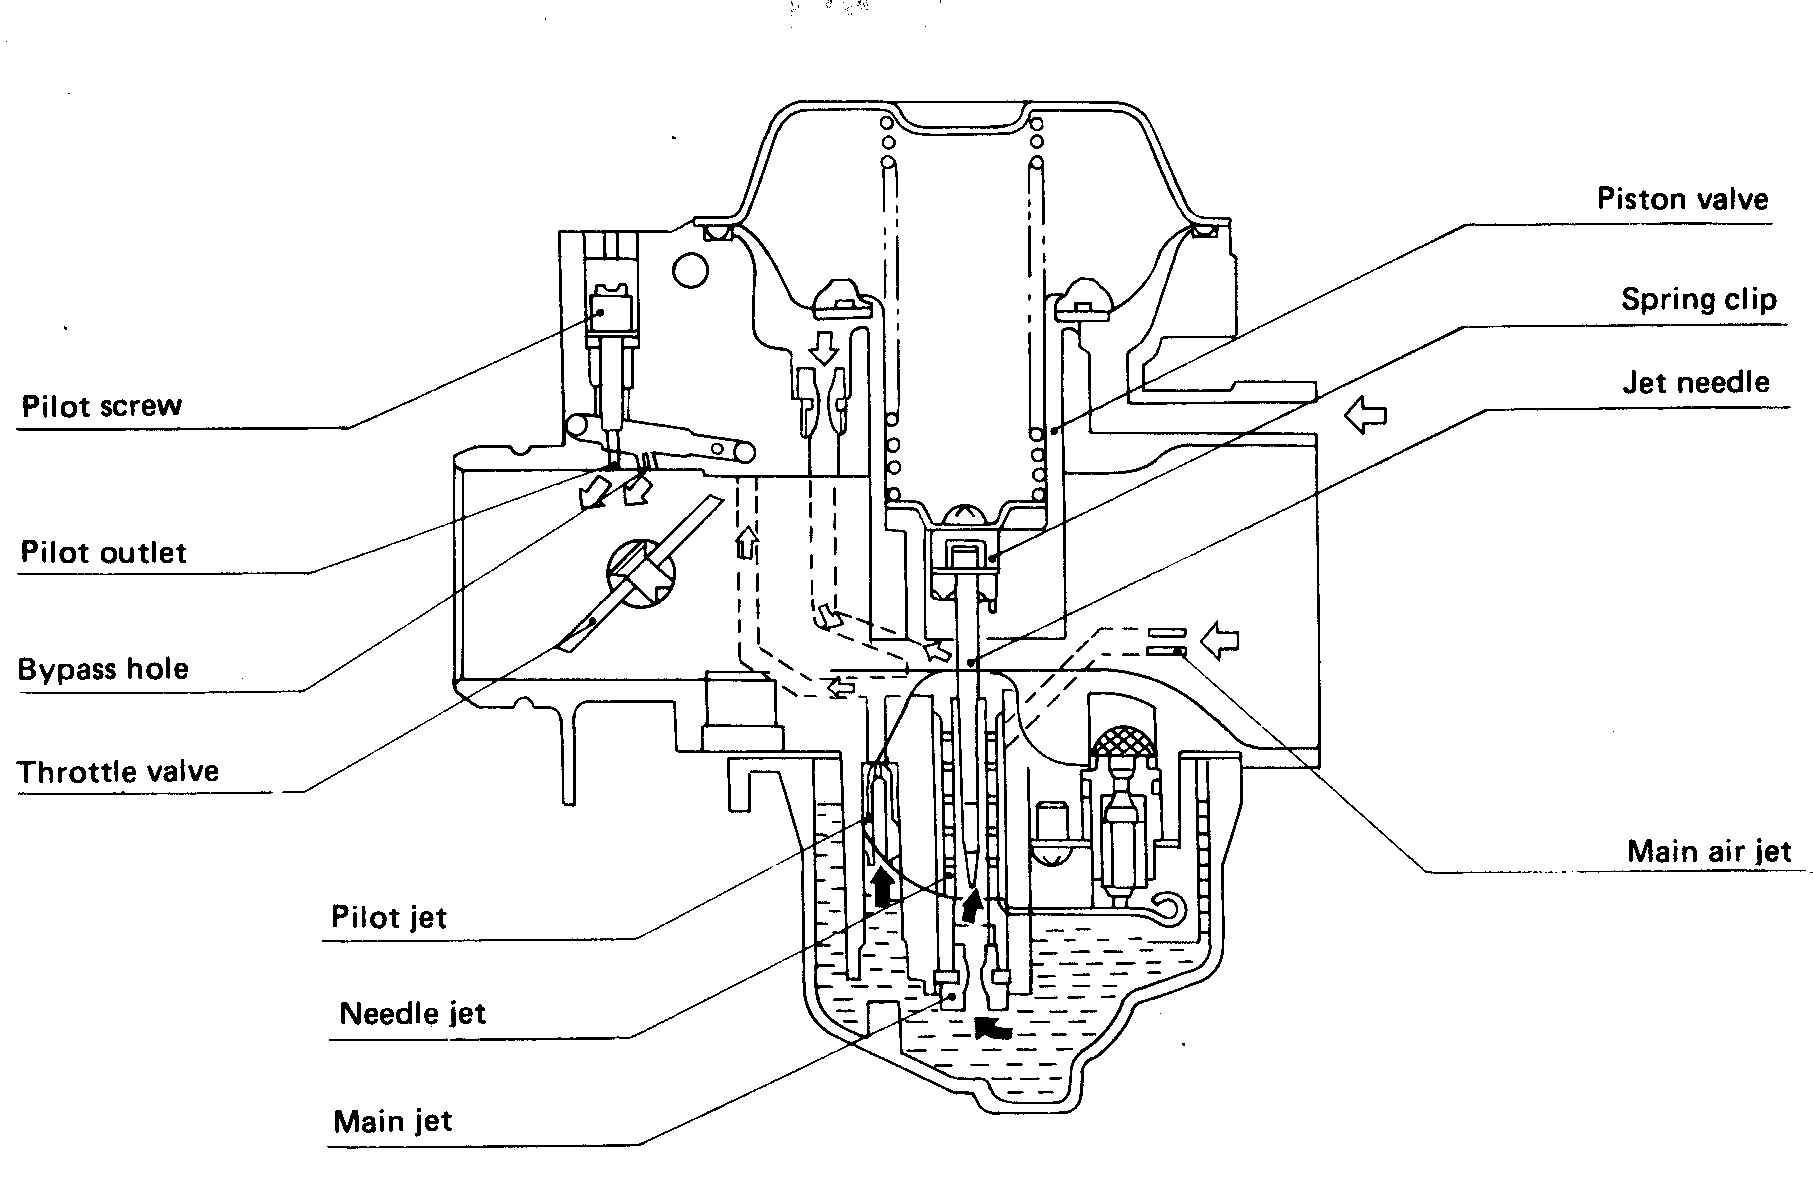 kz650 info diagrams : carb diagram - findchart.co